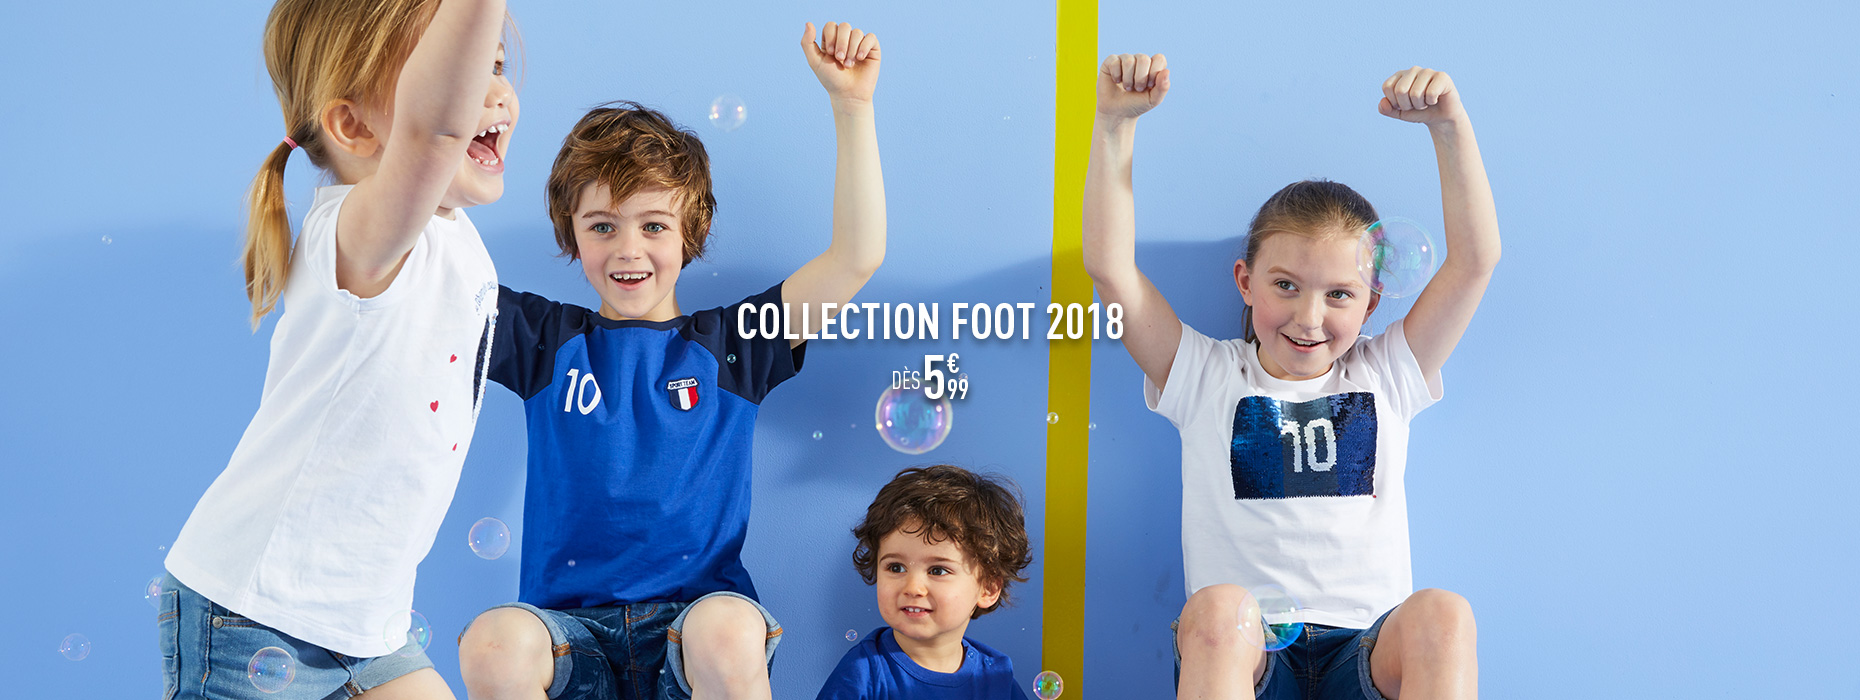 Collection Foot